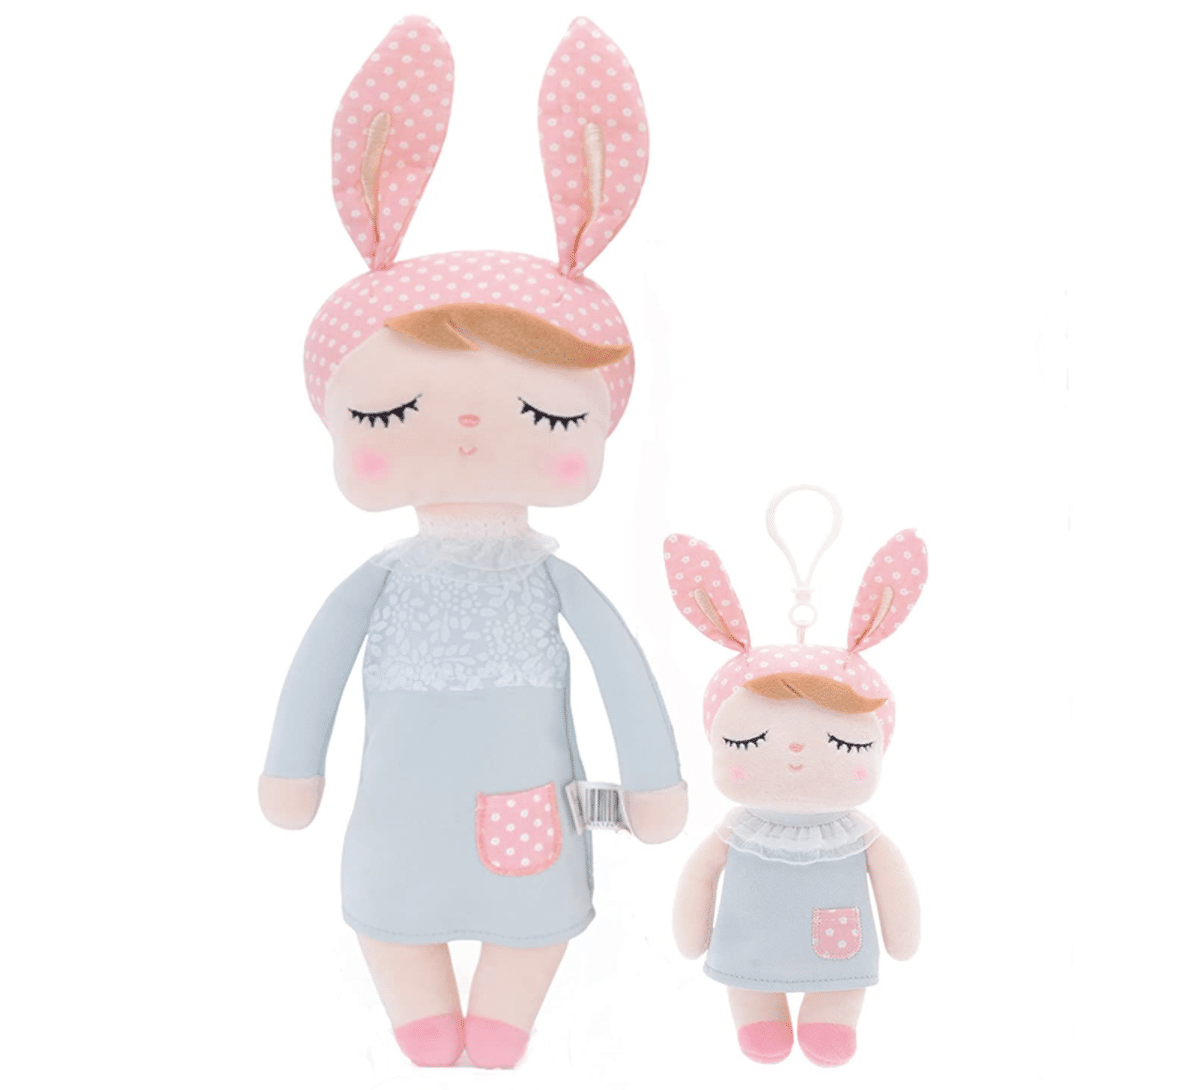 big-sister-gifts-doll